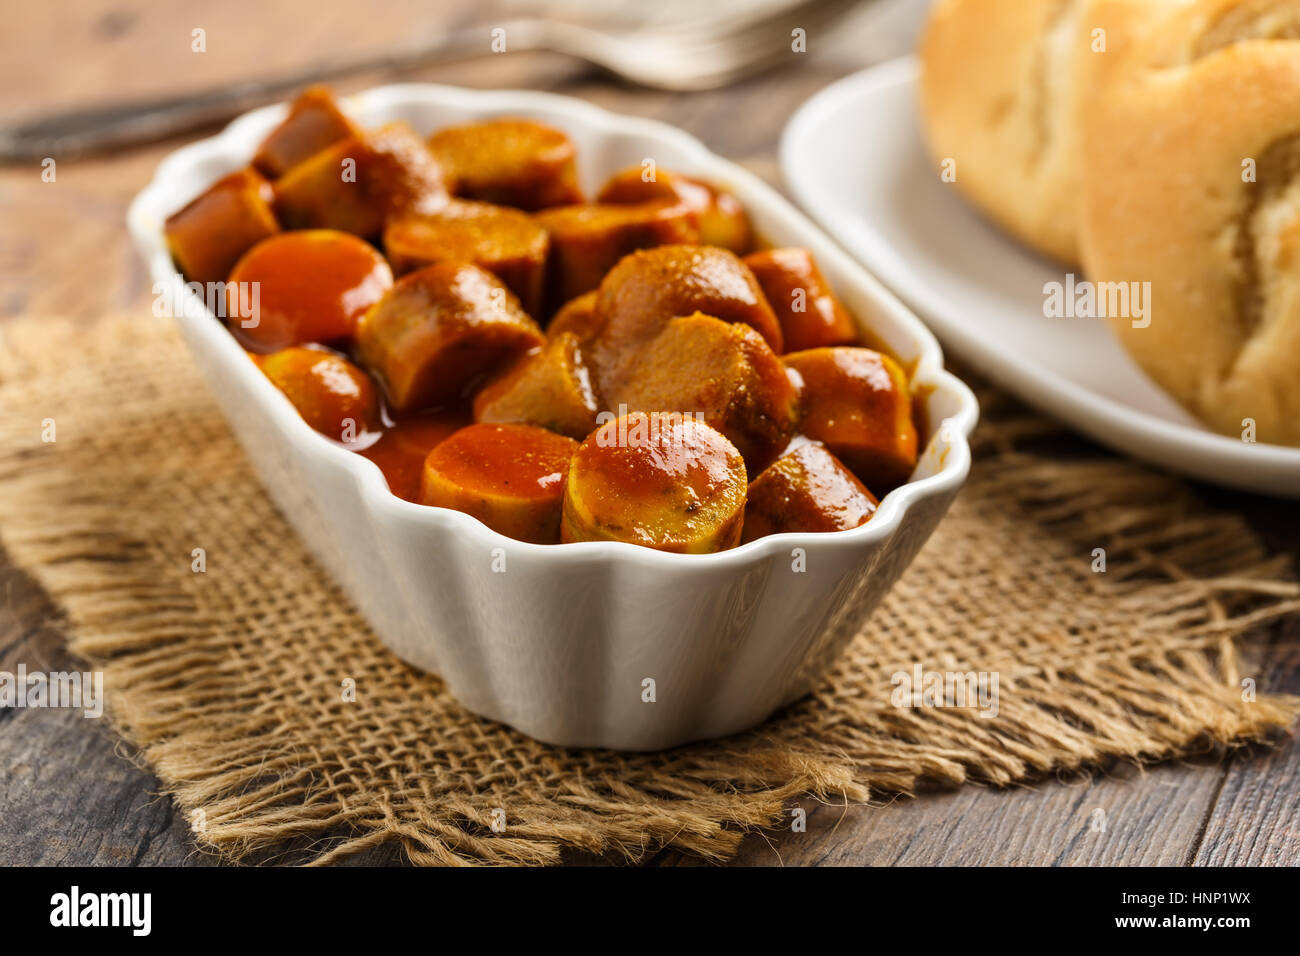 german currywurst - pieces of curried sausage - Stock Image